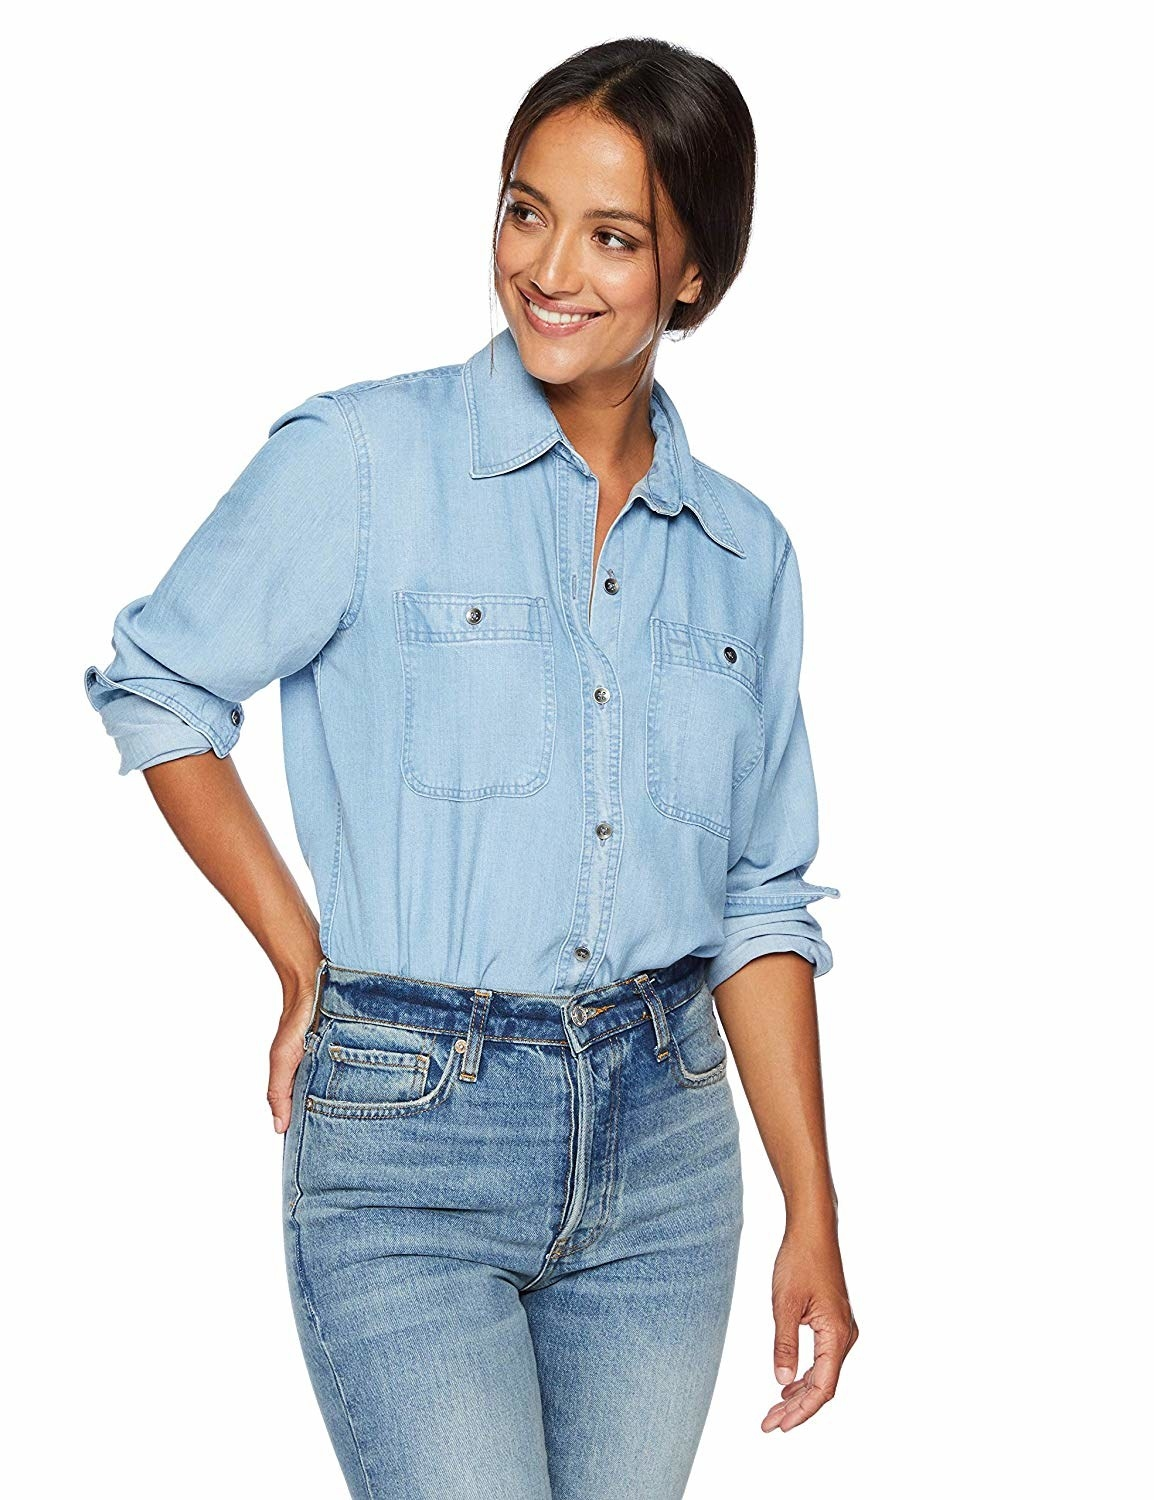 Model in a light wash chambray and jeans